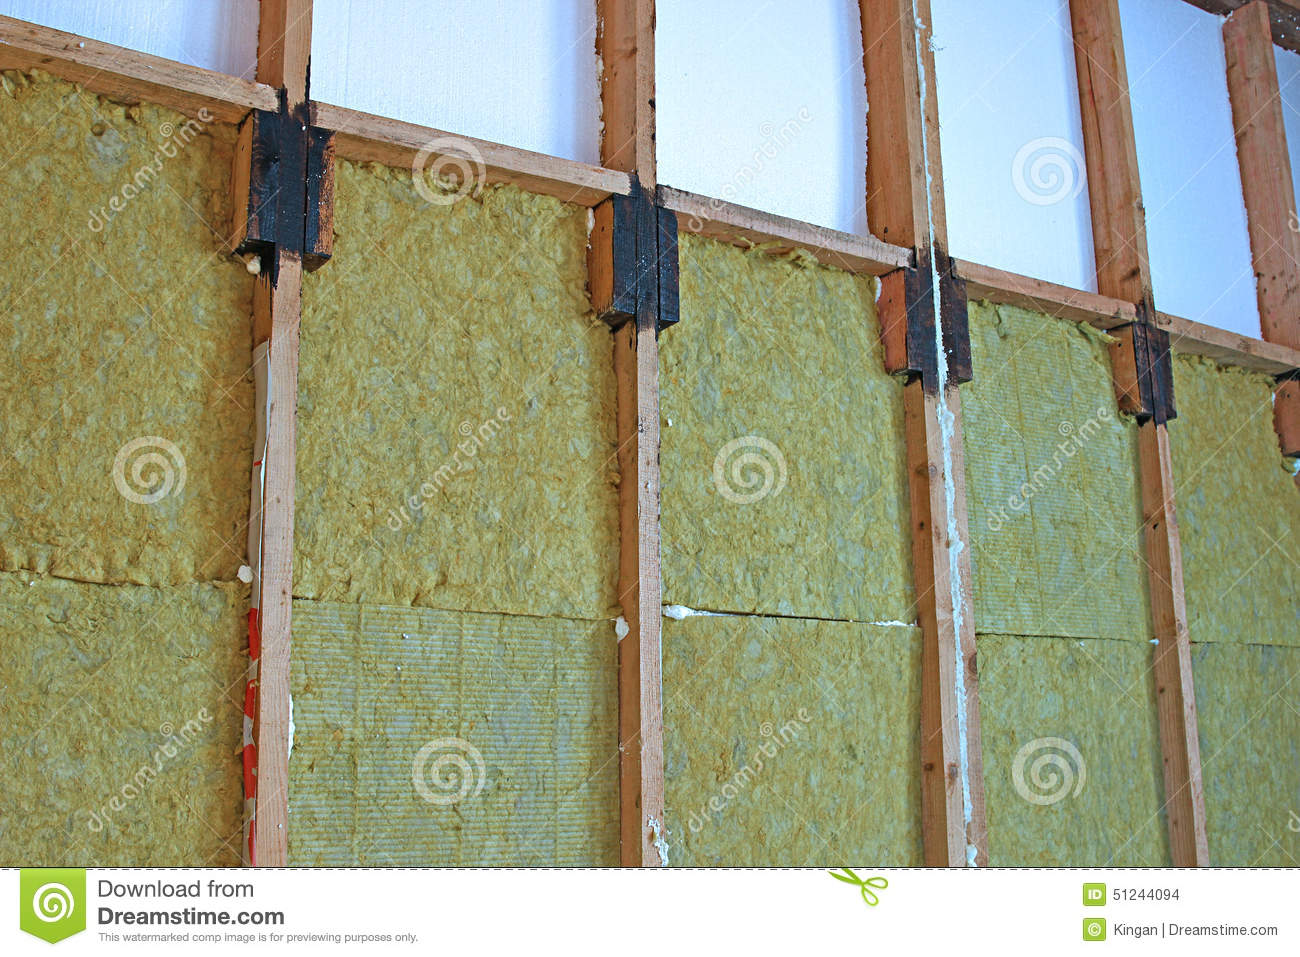 Walls Of A Frame House With Different Types Of Heat